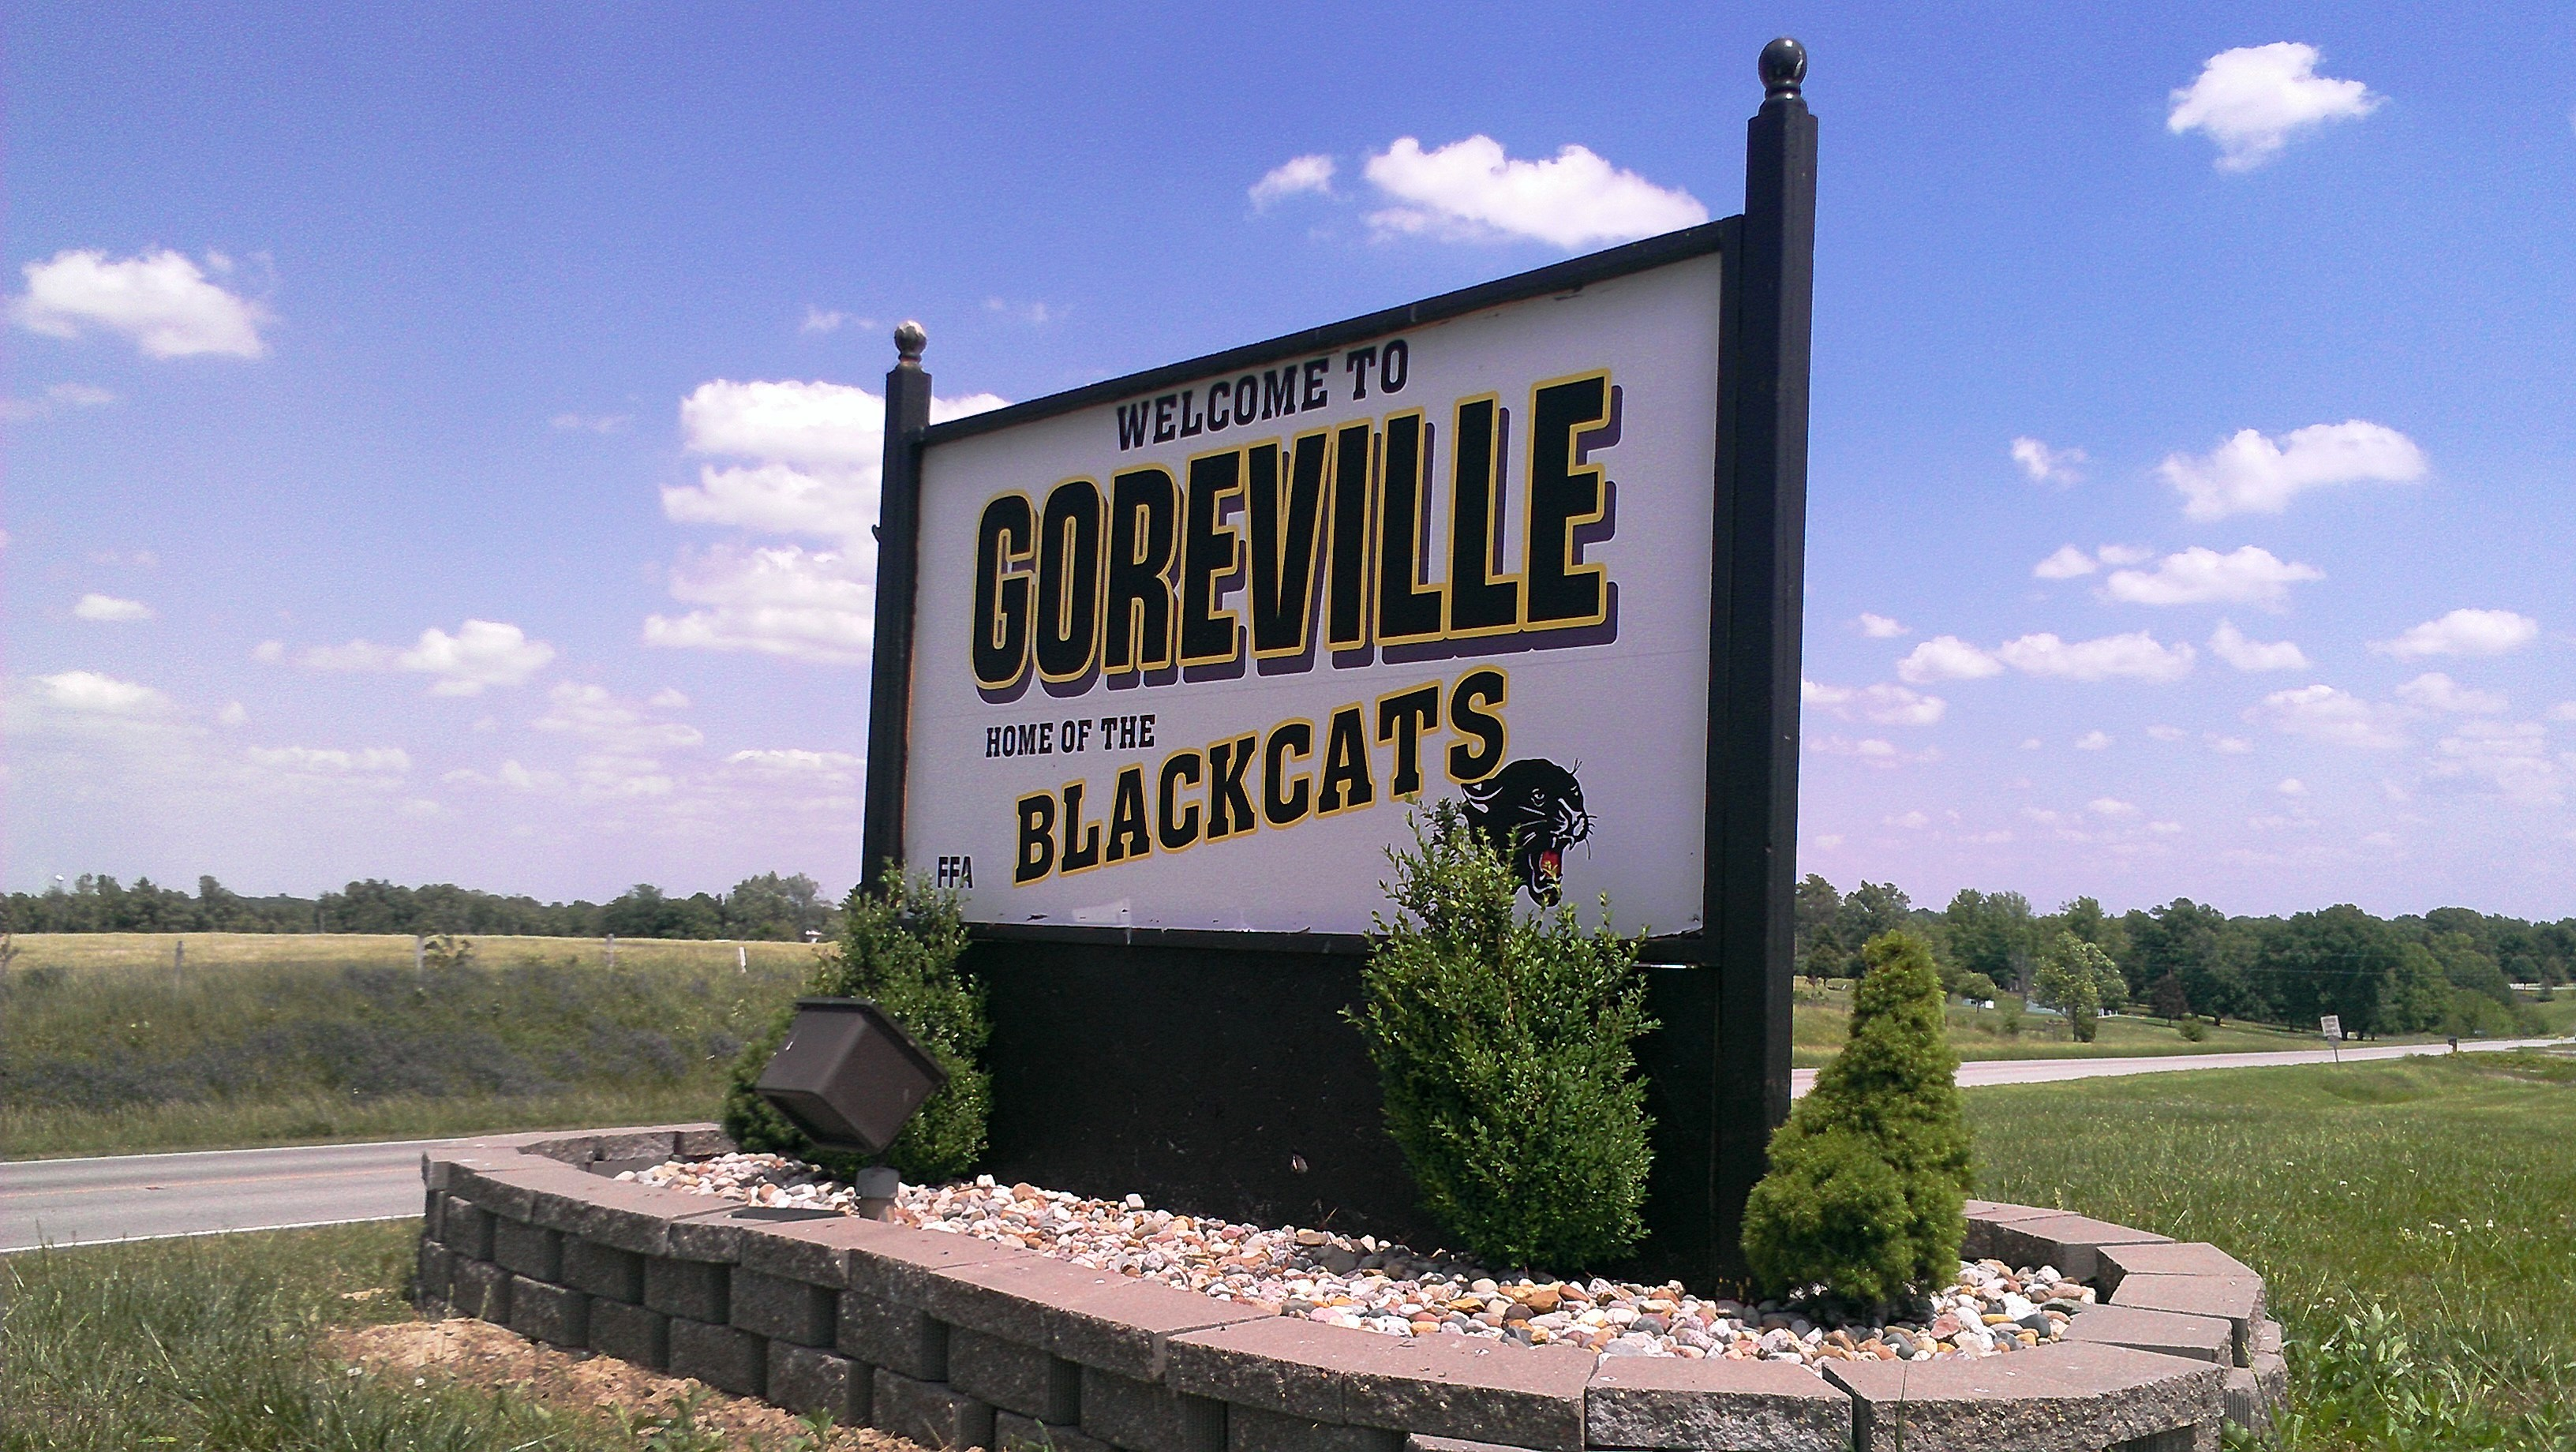 Welcome to Goreville